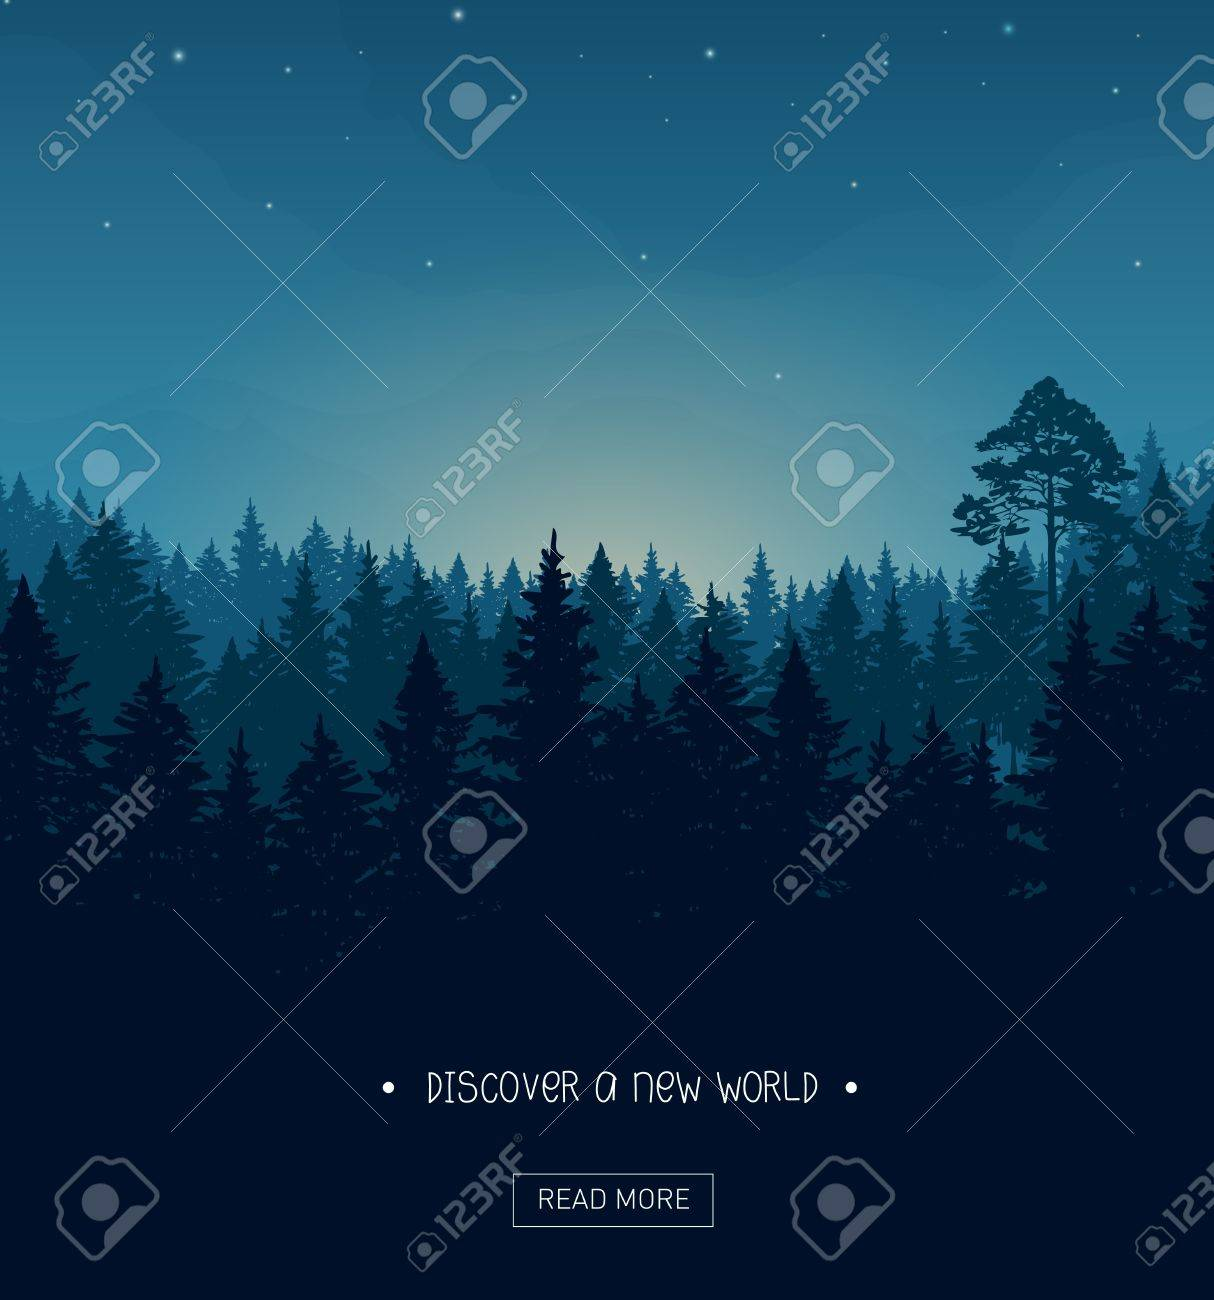 Coniferous forest silhouette background image with nightime stars and rays of the sunset - 74889509